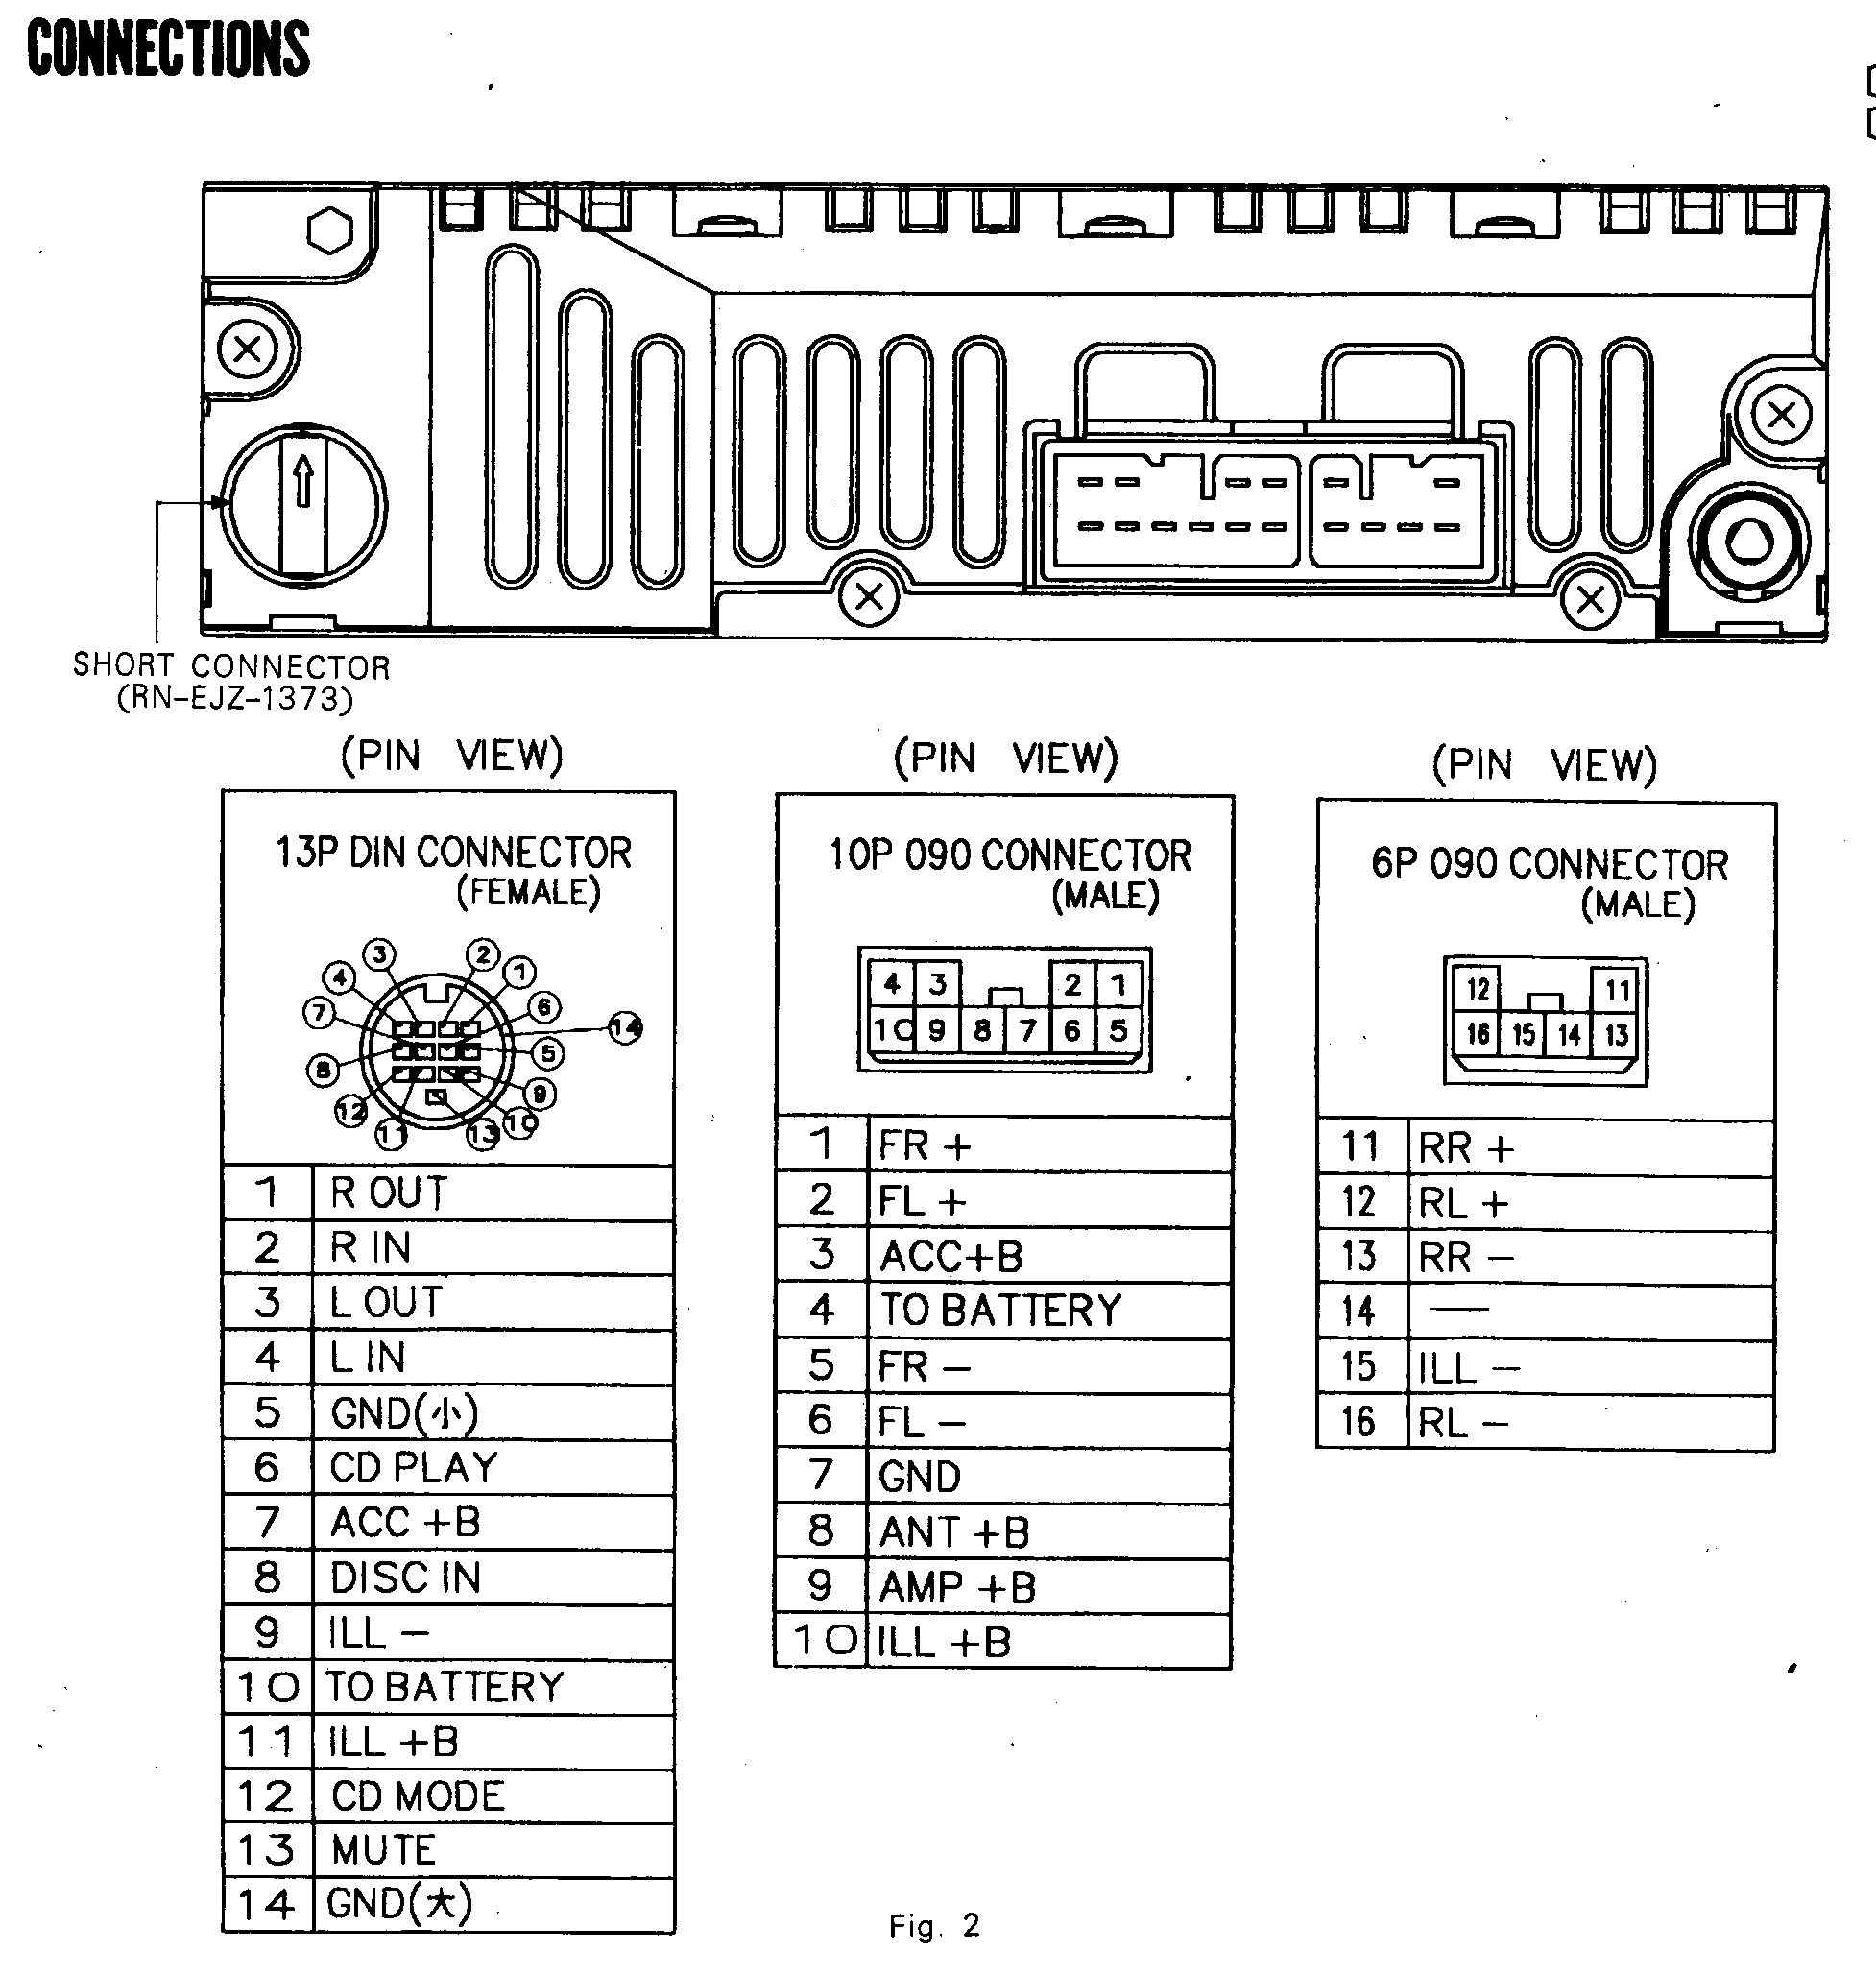 Toyota Wiring Diagram For Radio Opinions About 2005 Prius Diagrams Car Stereo Help Wire Color Code And Rh Carstereoremoval Com 4runner Yaris